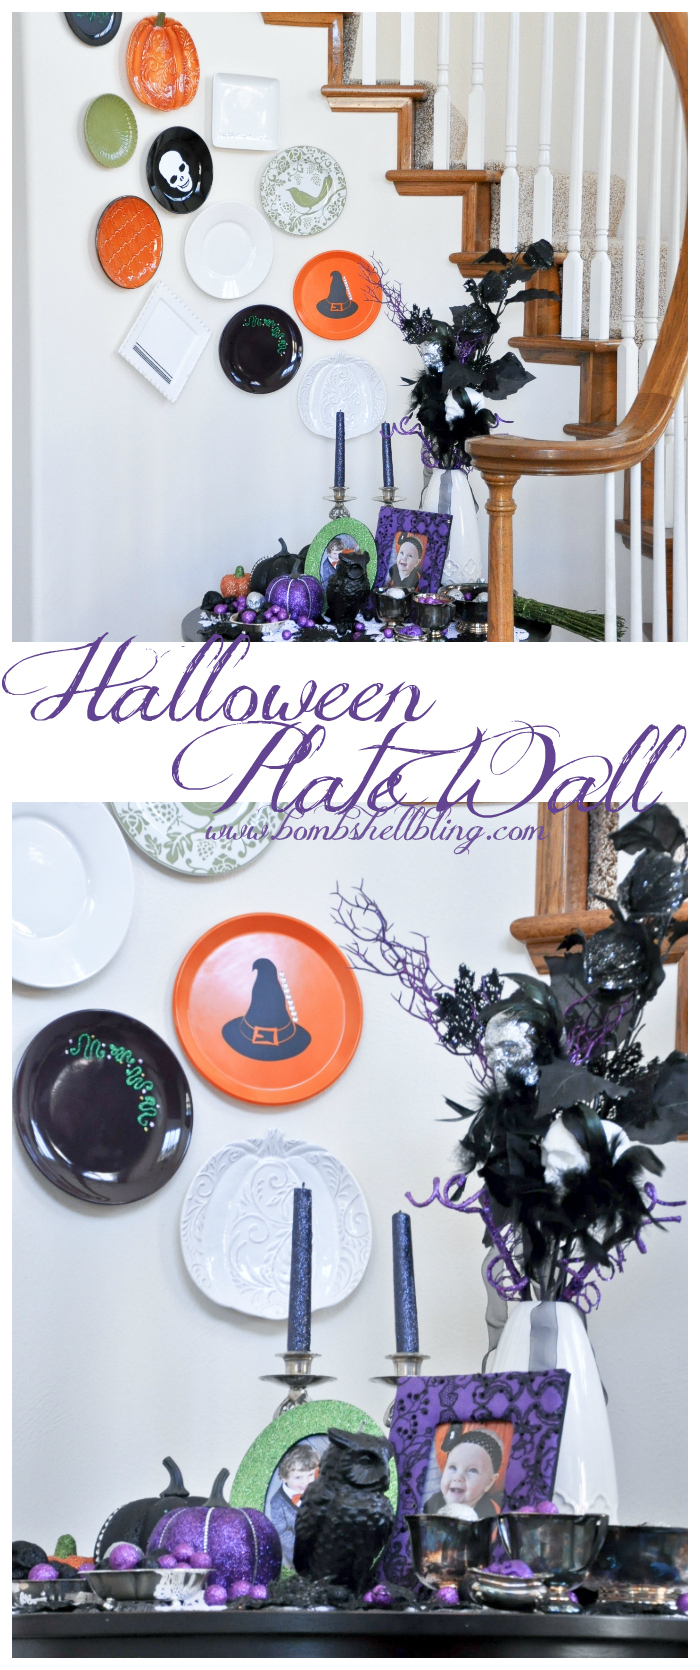 halloween-plate-wall-on-bombshell-bling